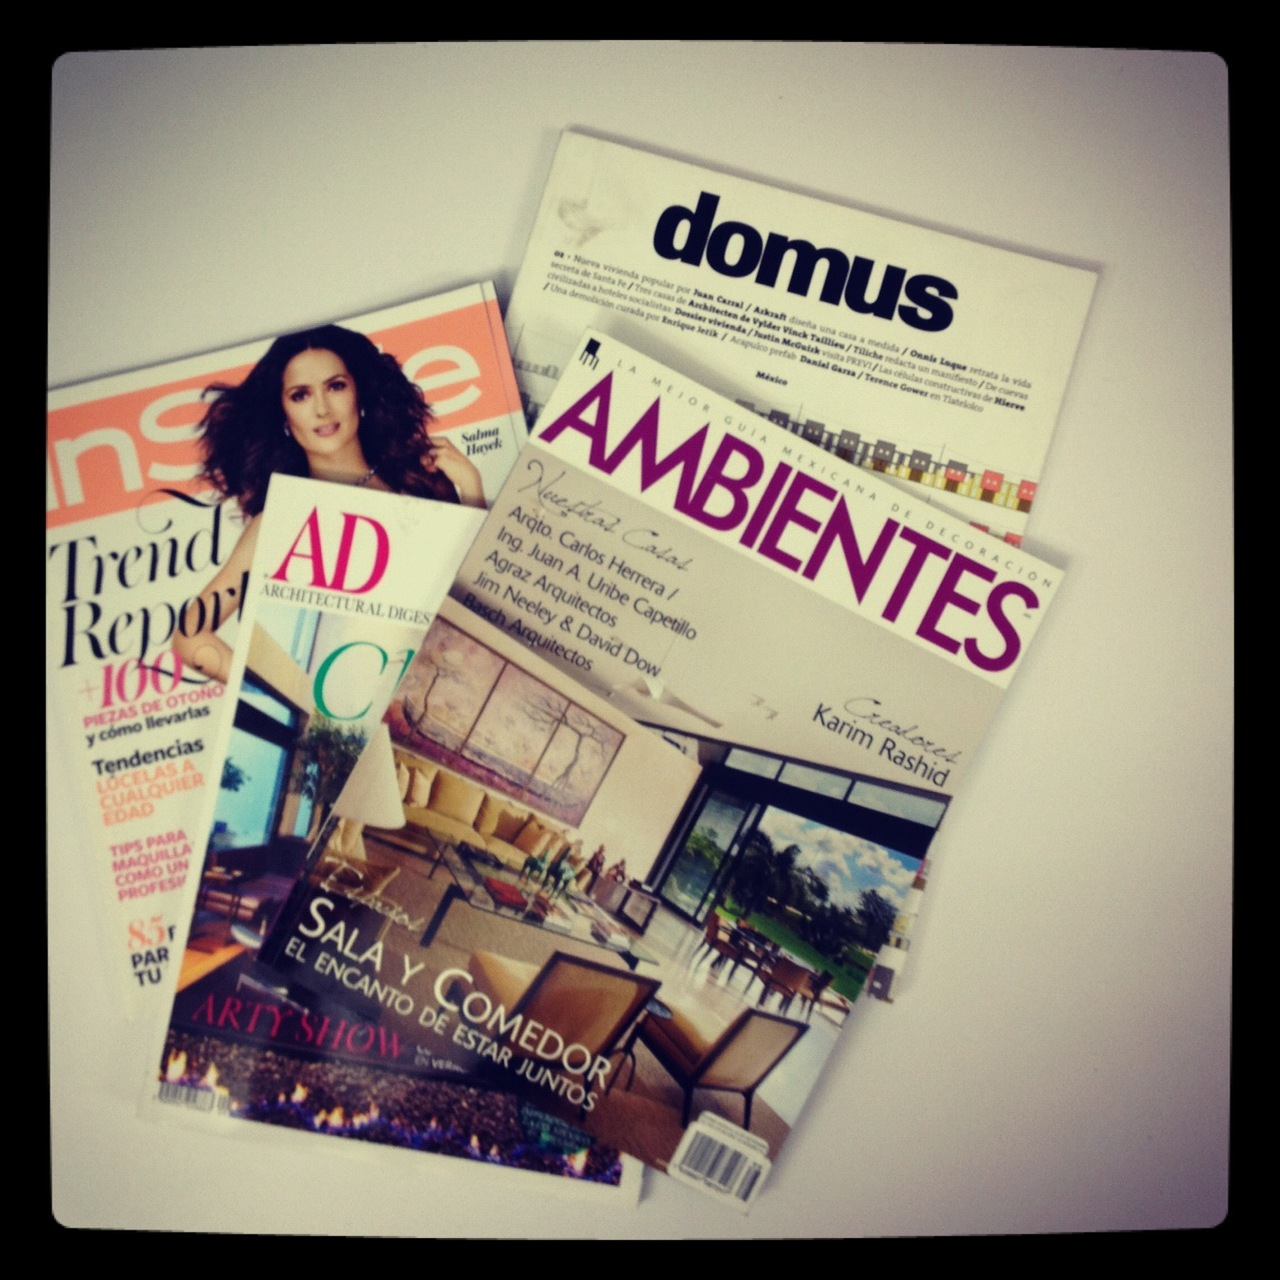 September has us all over the press! We've been getting a lot of attention on the press this past few weeks with several projects featured in magazines and blogs all over the world. We would like to thank Architectural Digest, Ambientes, InStyle, Domus and DeZeen for publishing our projects Cages, Sultanas and the First Object for Casa Bosques. View the articles on our press section.